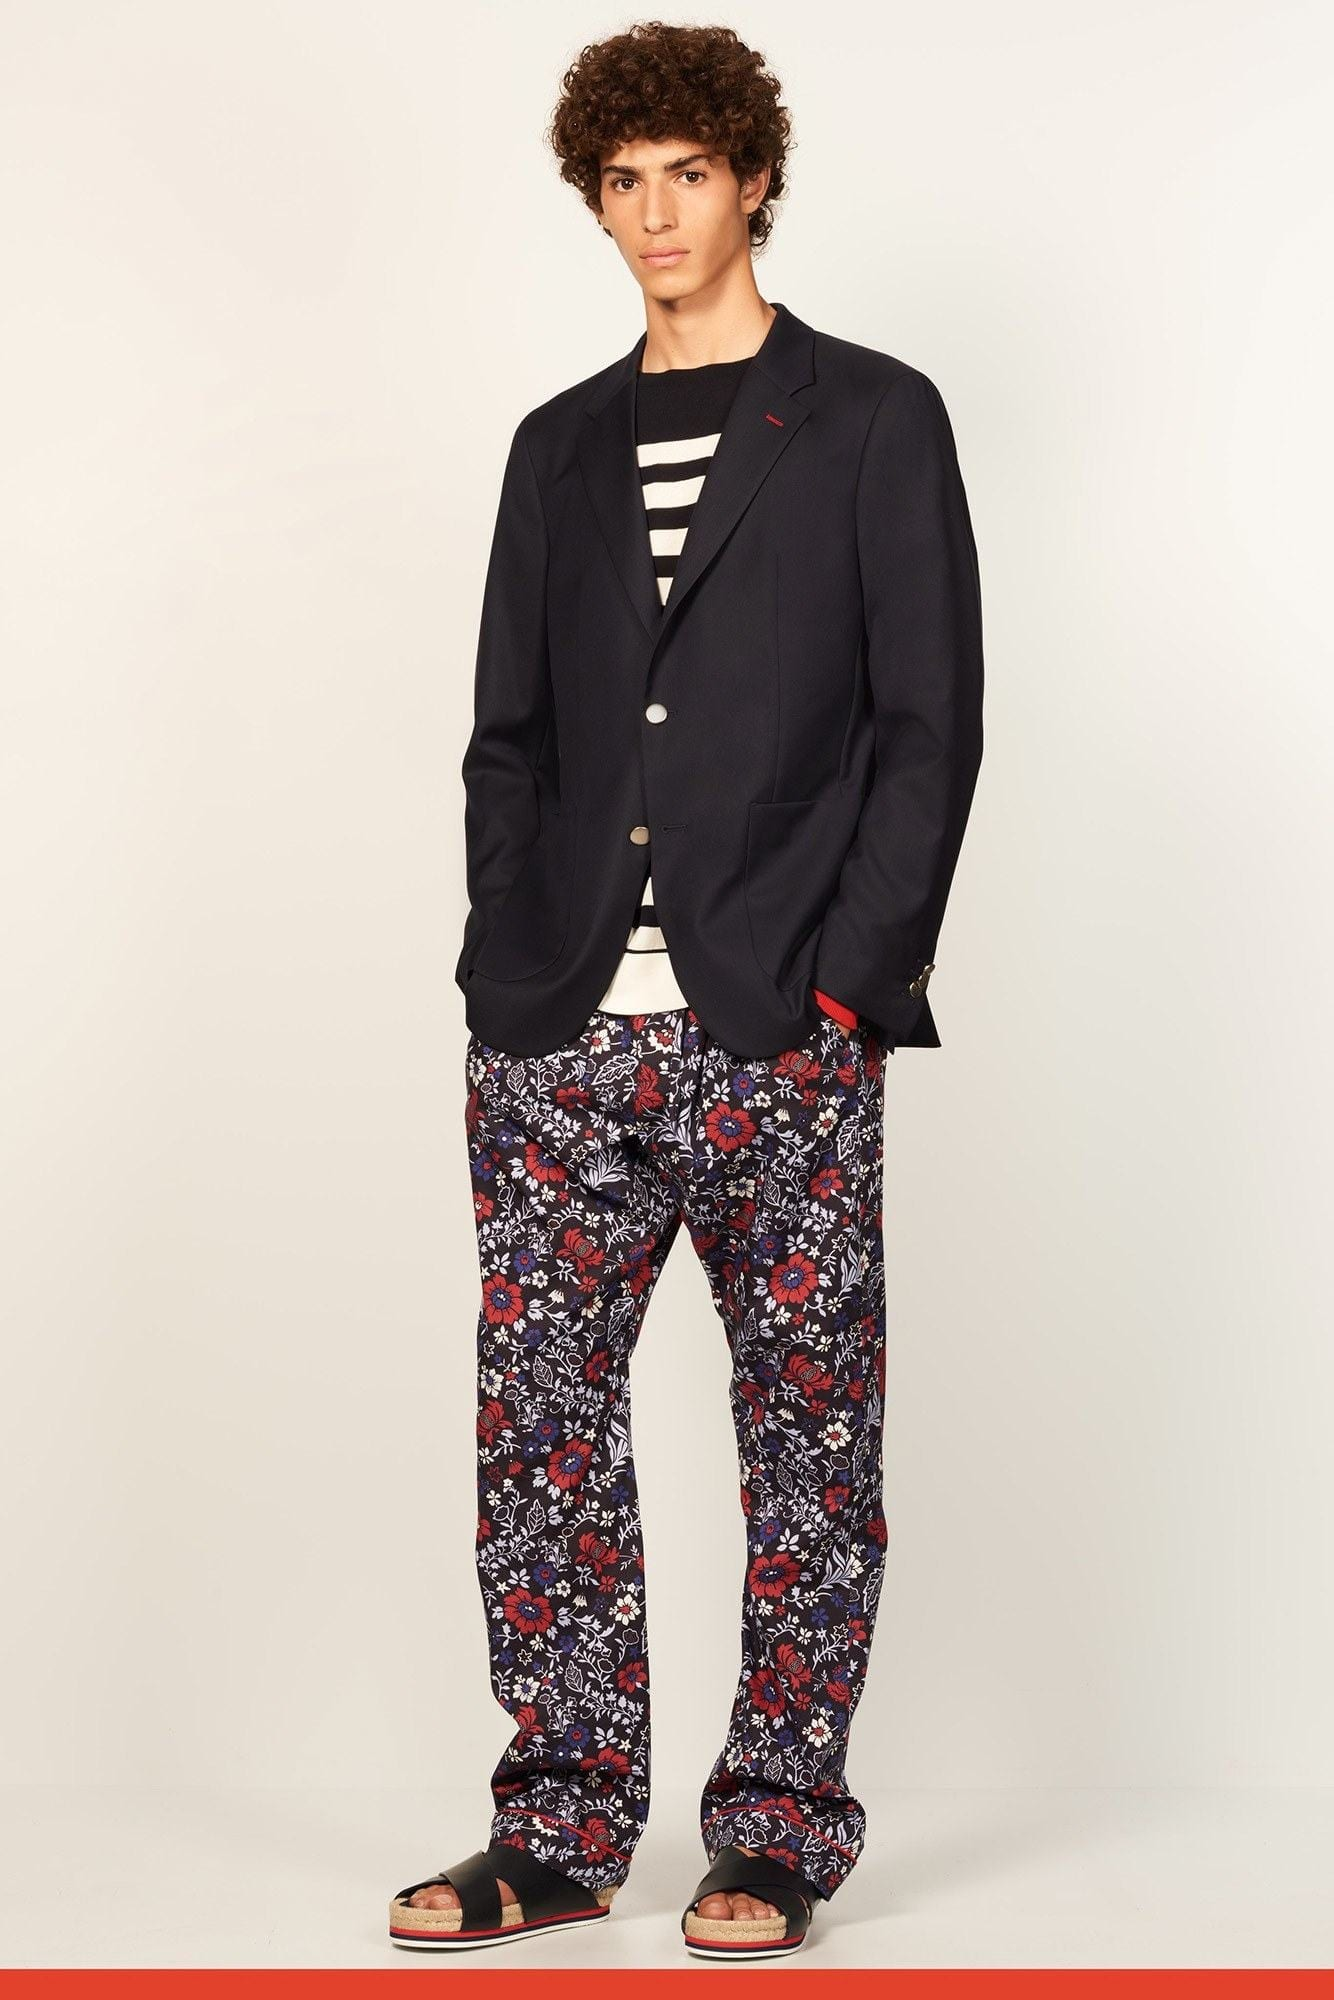 Funky-Outfit-by-Tommy-Hilfiger 30 Funky Outfits for Guys Trending These Days